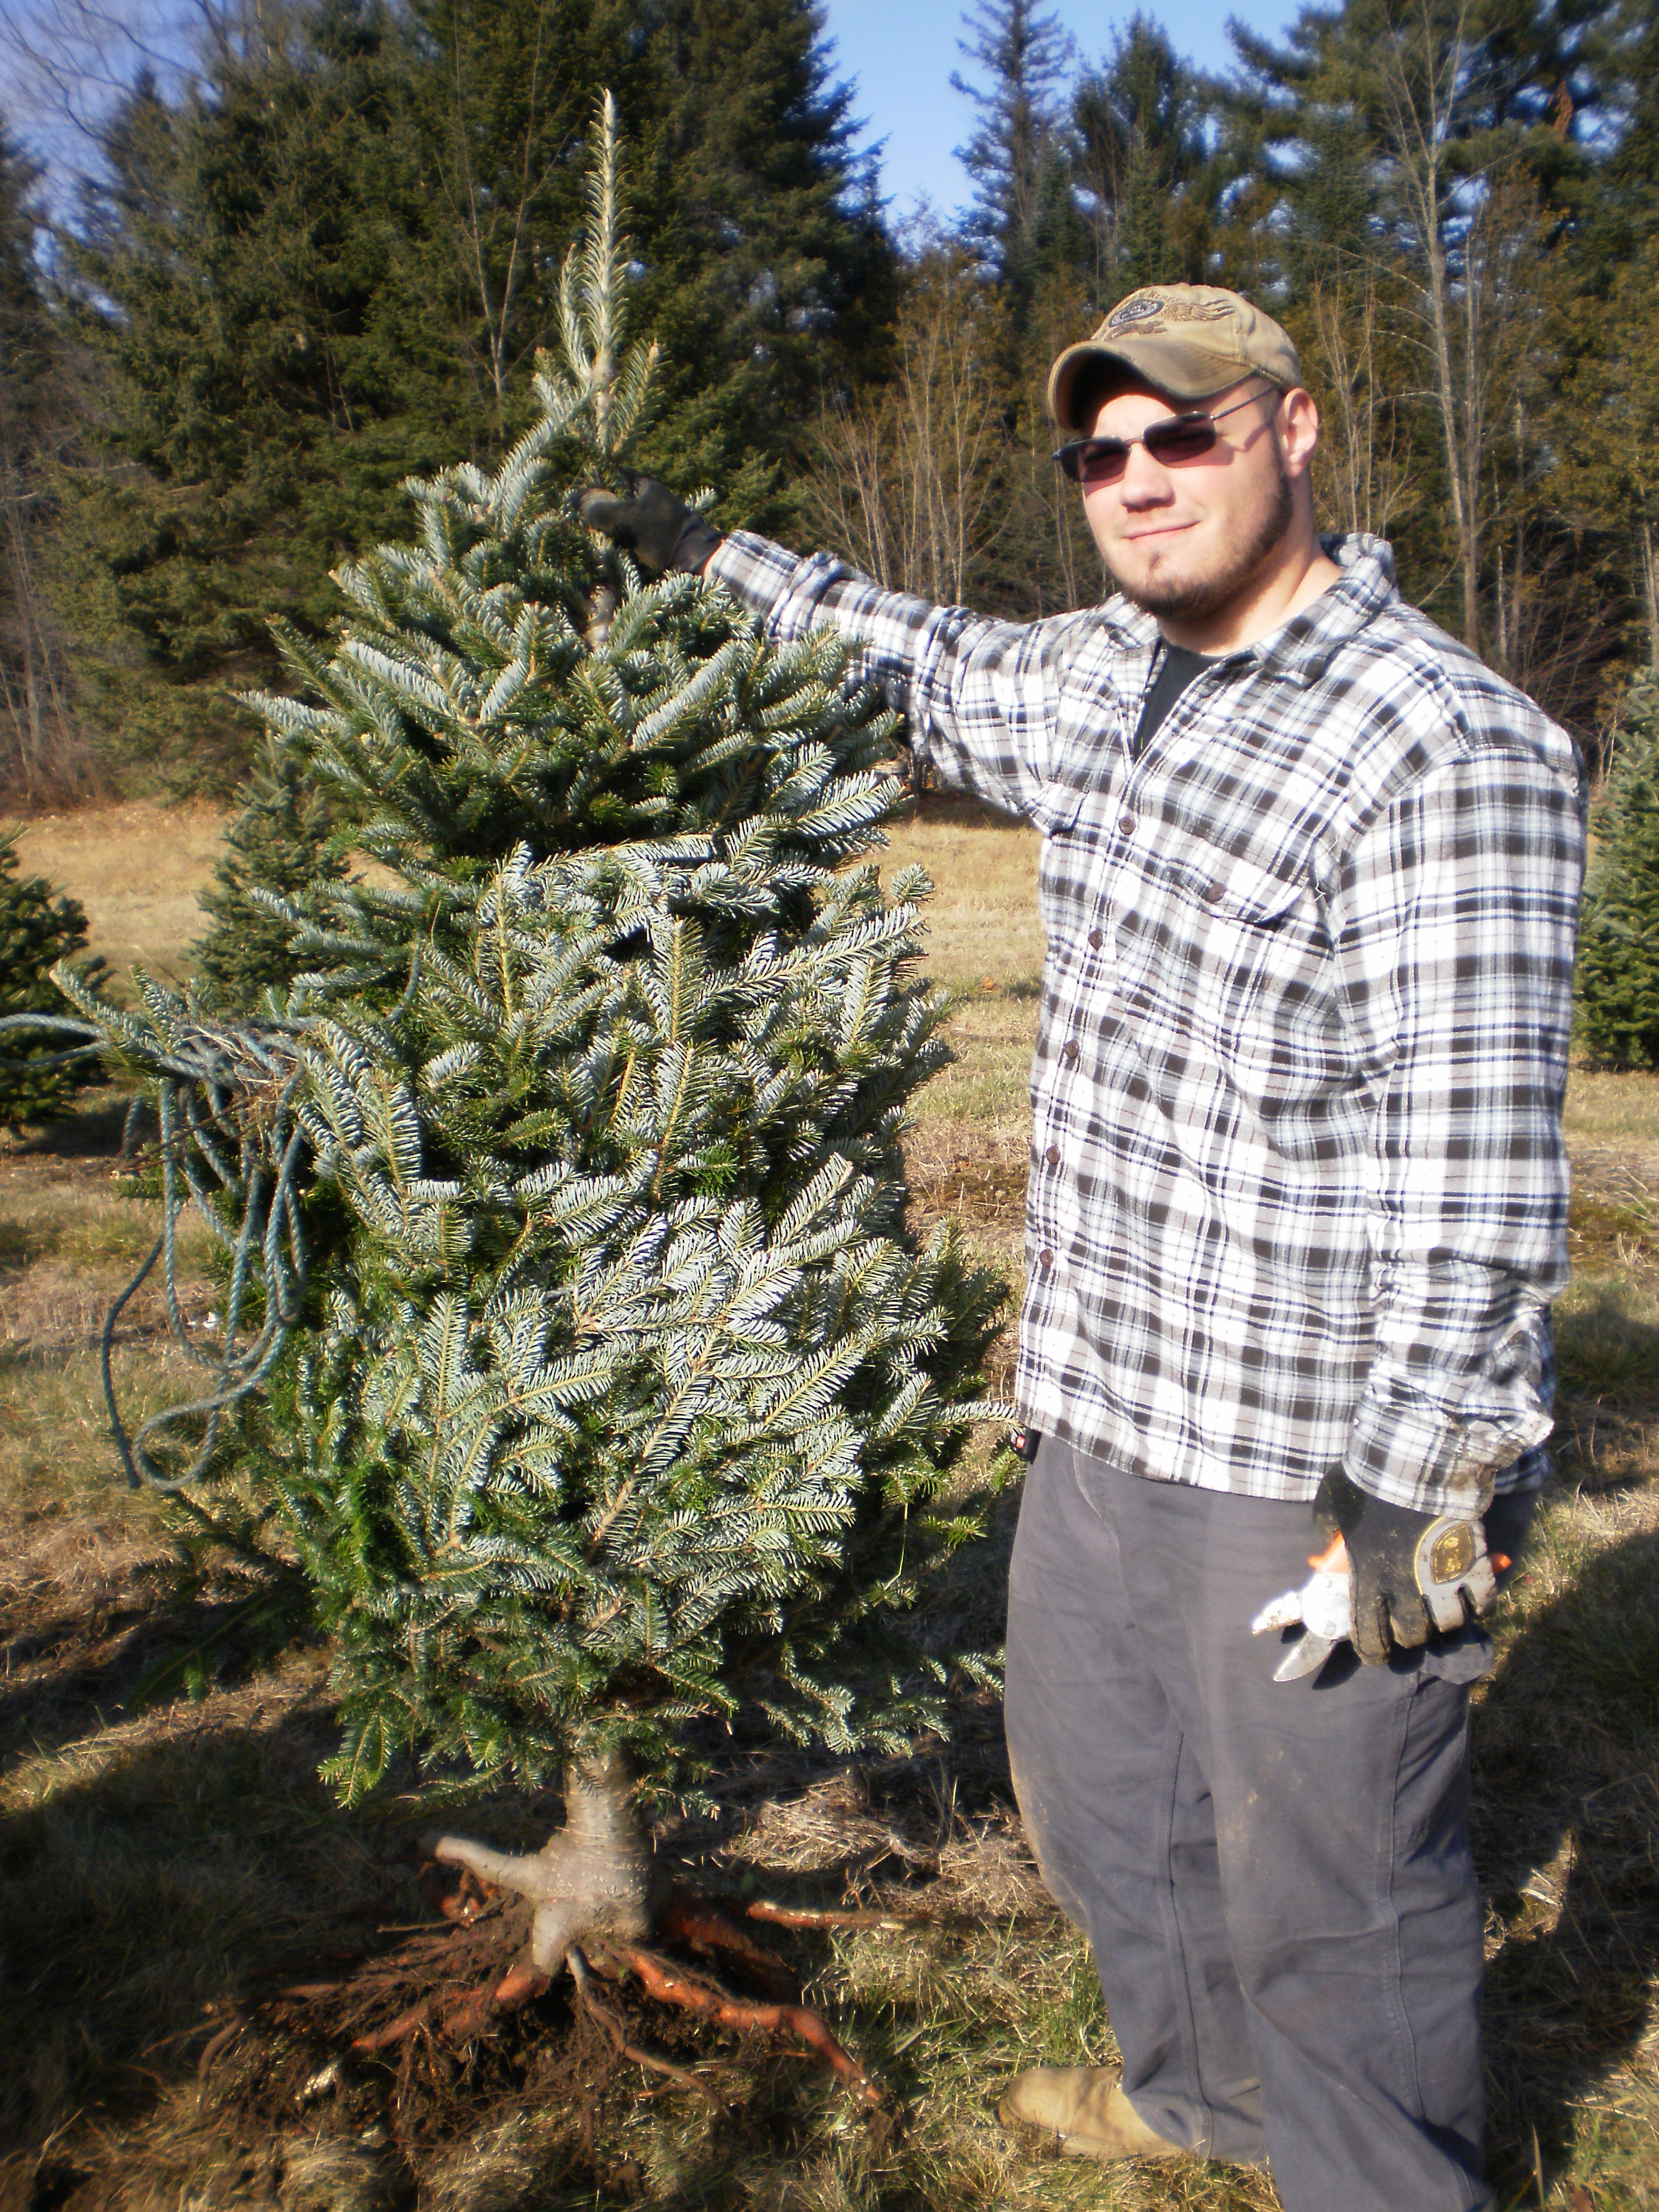 man holding a Christmas tree for sale